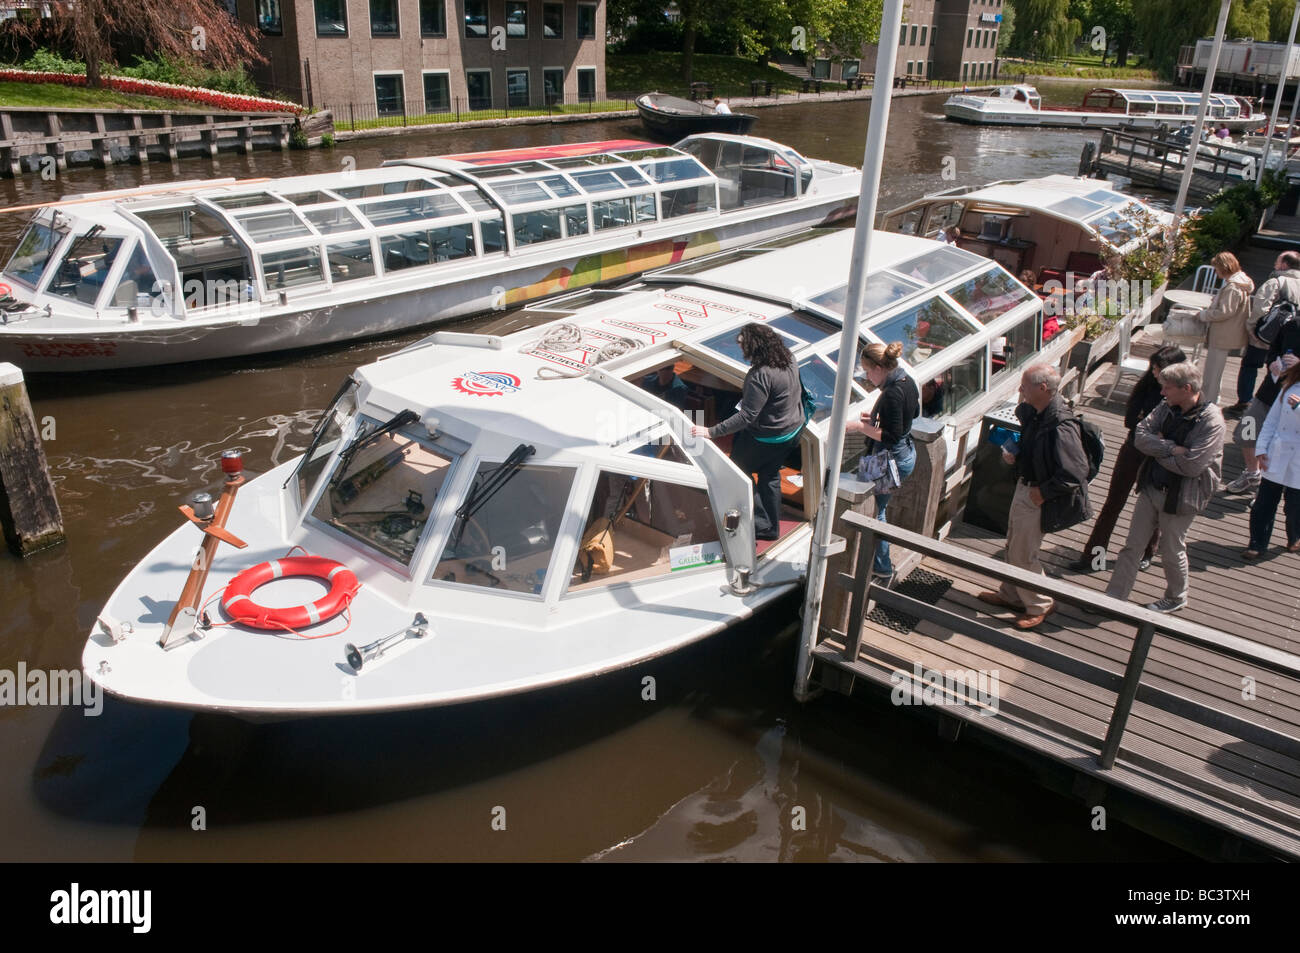 Passengers embarking a canal bus on an Amsterdam Canal - Stock Image